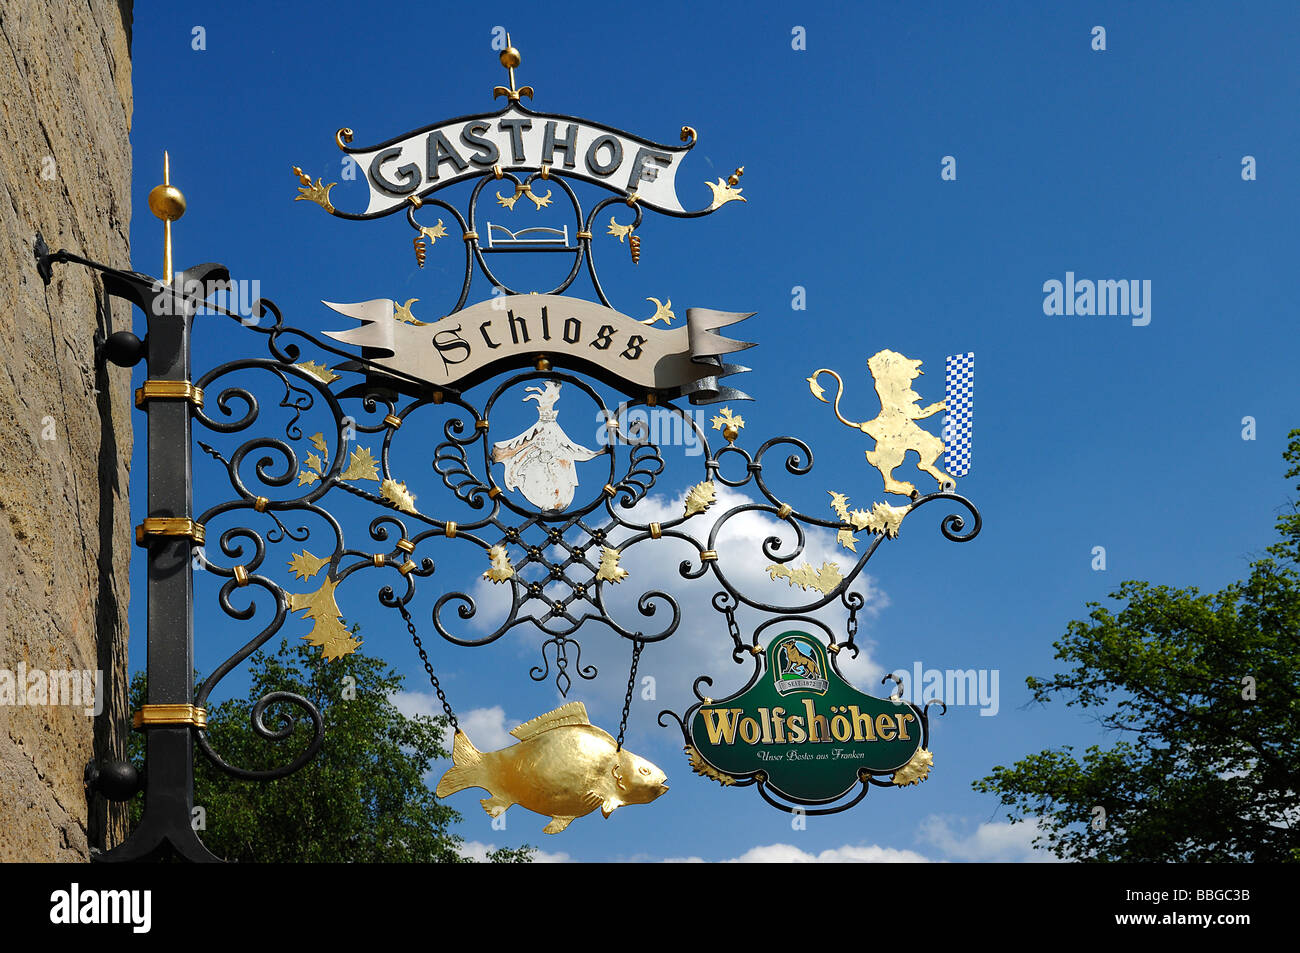 Decorative inn sign against blue sky, Eckental, Middle Franconia, Bavaria, Germany, Europe - Stock Image